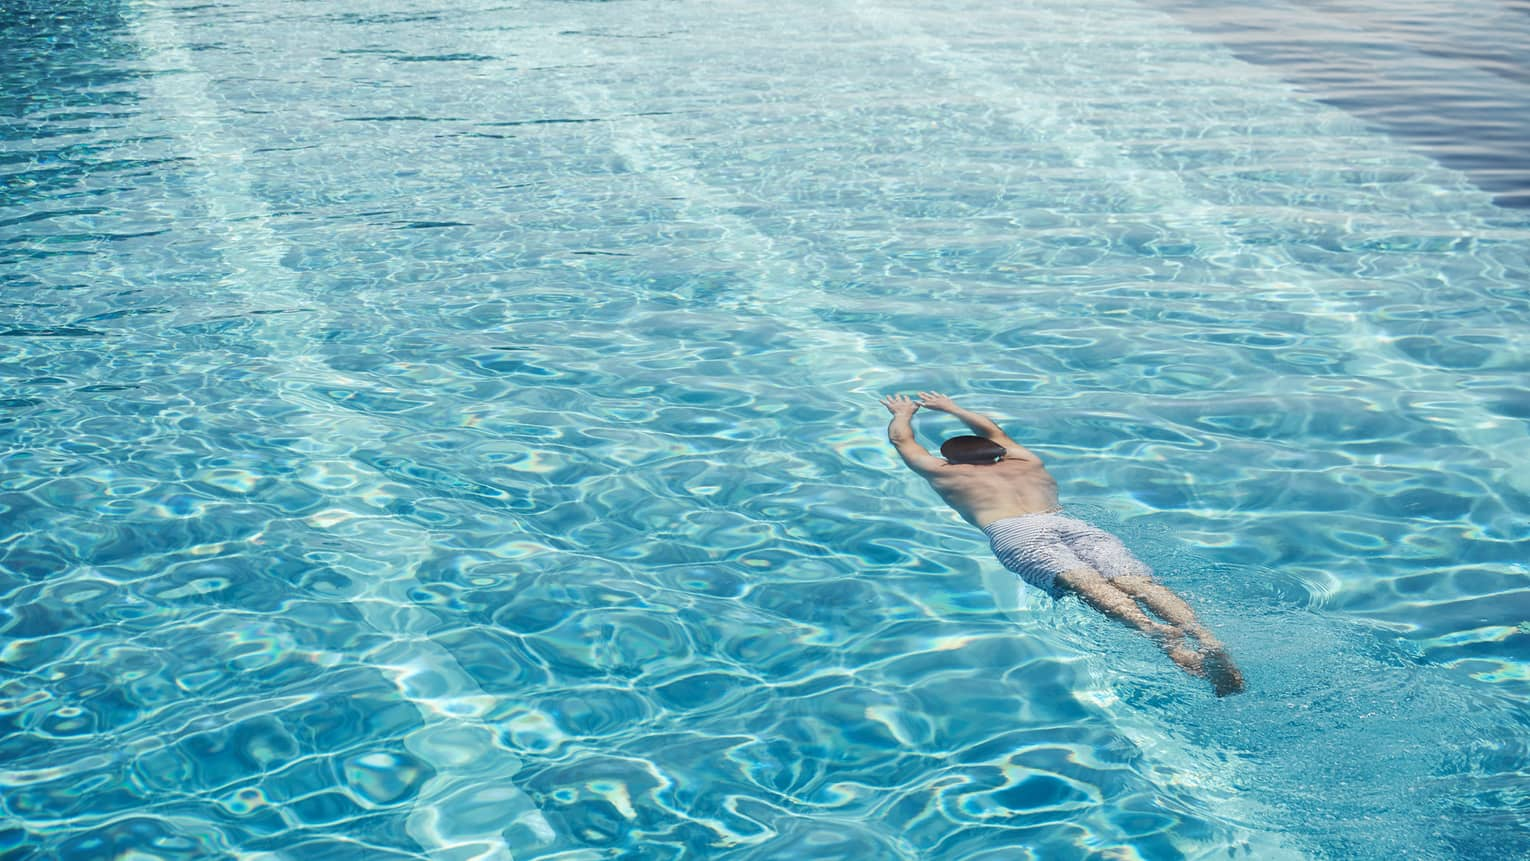 Man in swim shorts with arms outstretched dives underwater in blue swimming pool